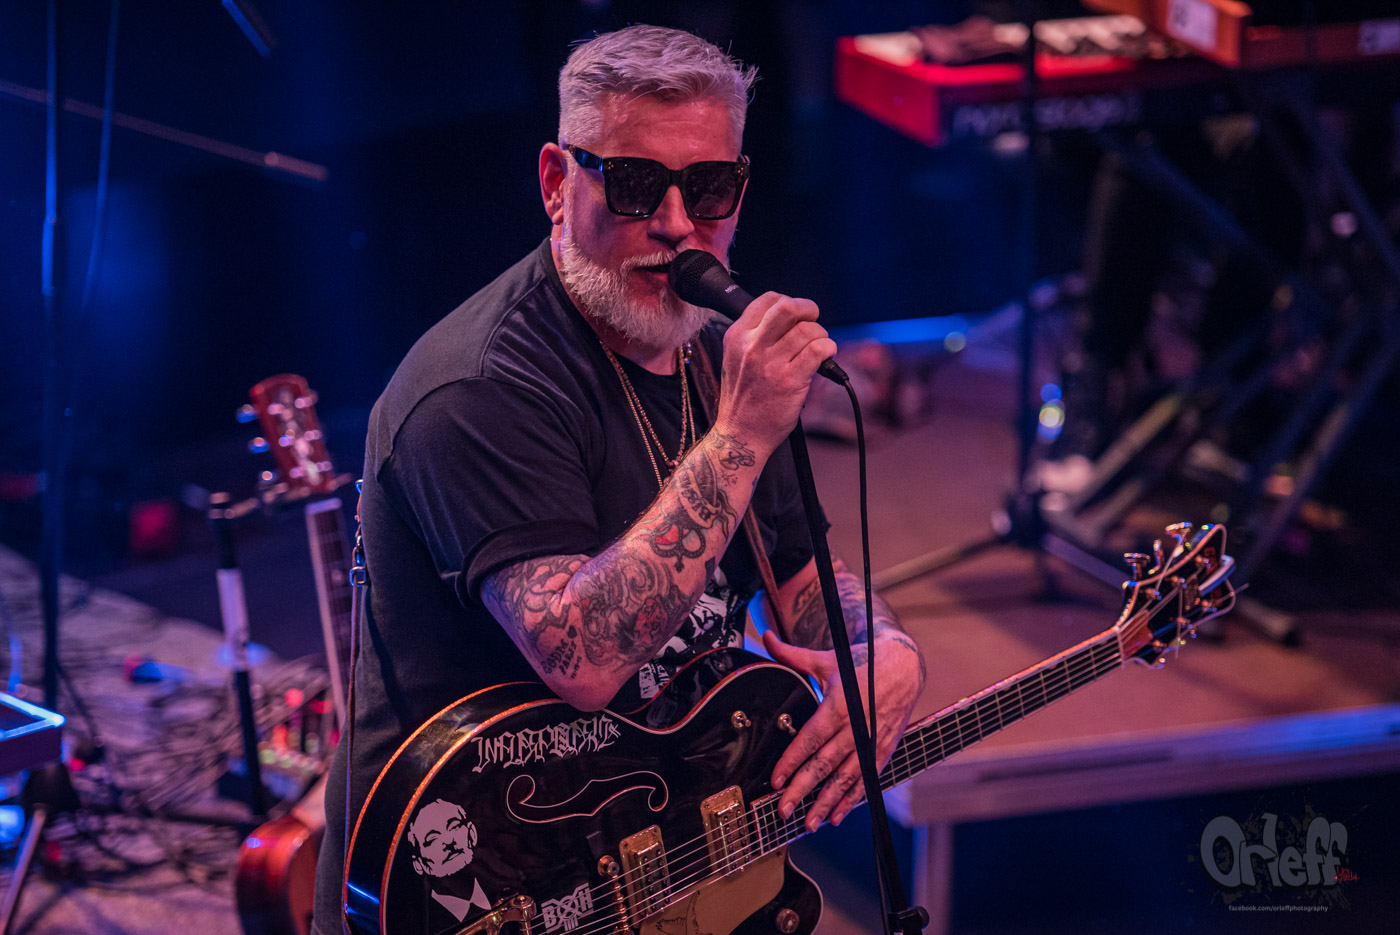 Everlast @ Music Jam, 2019